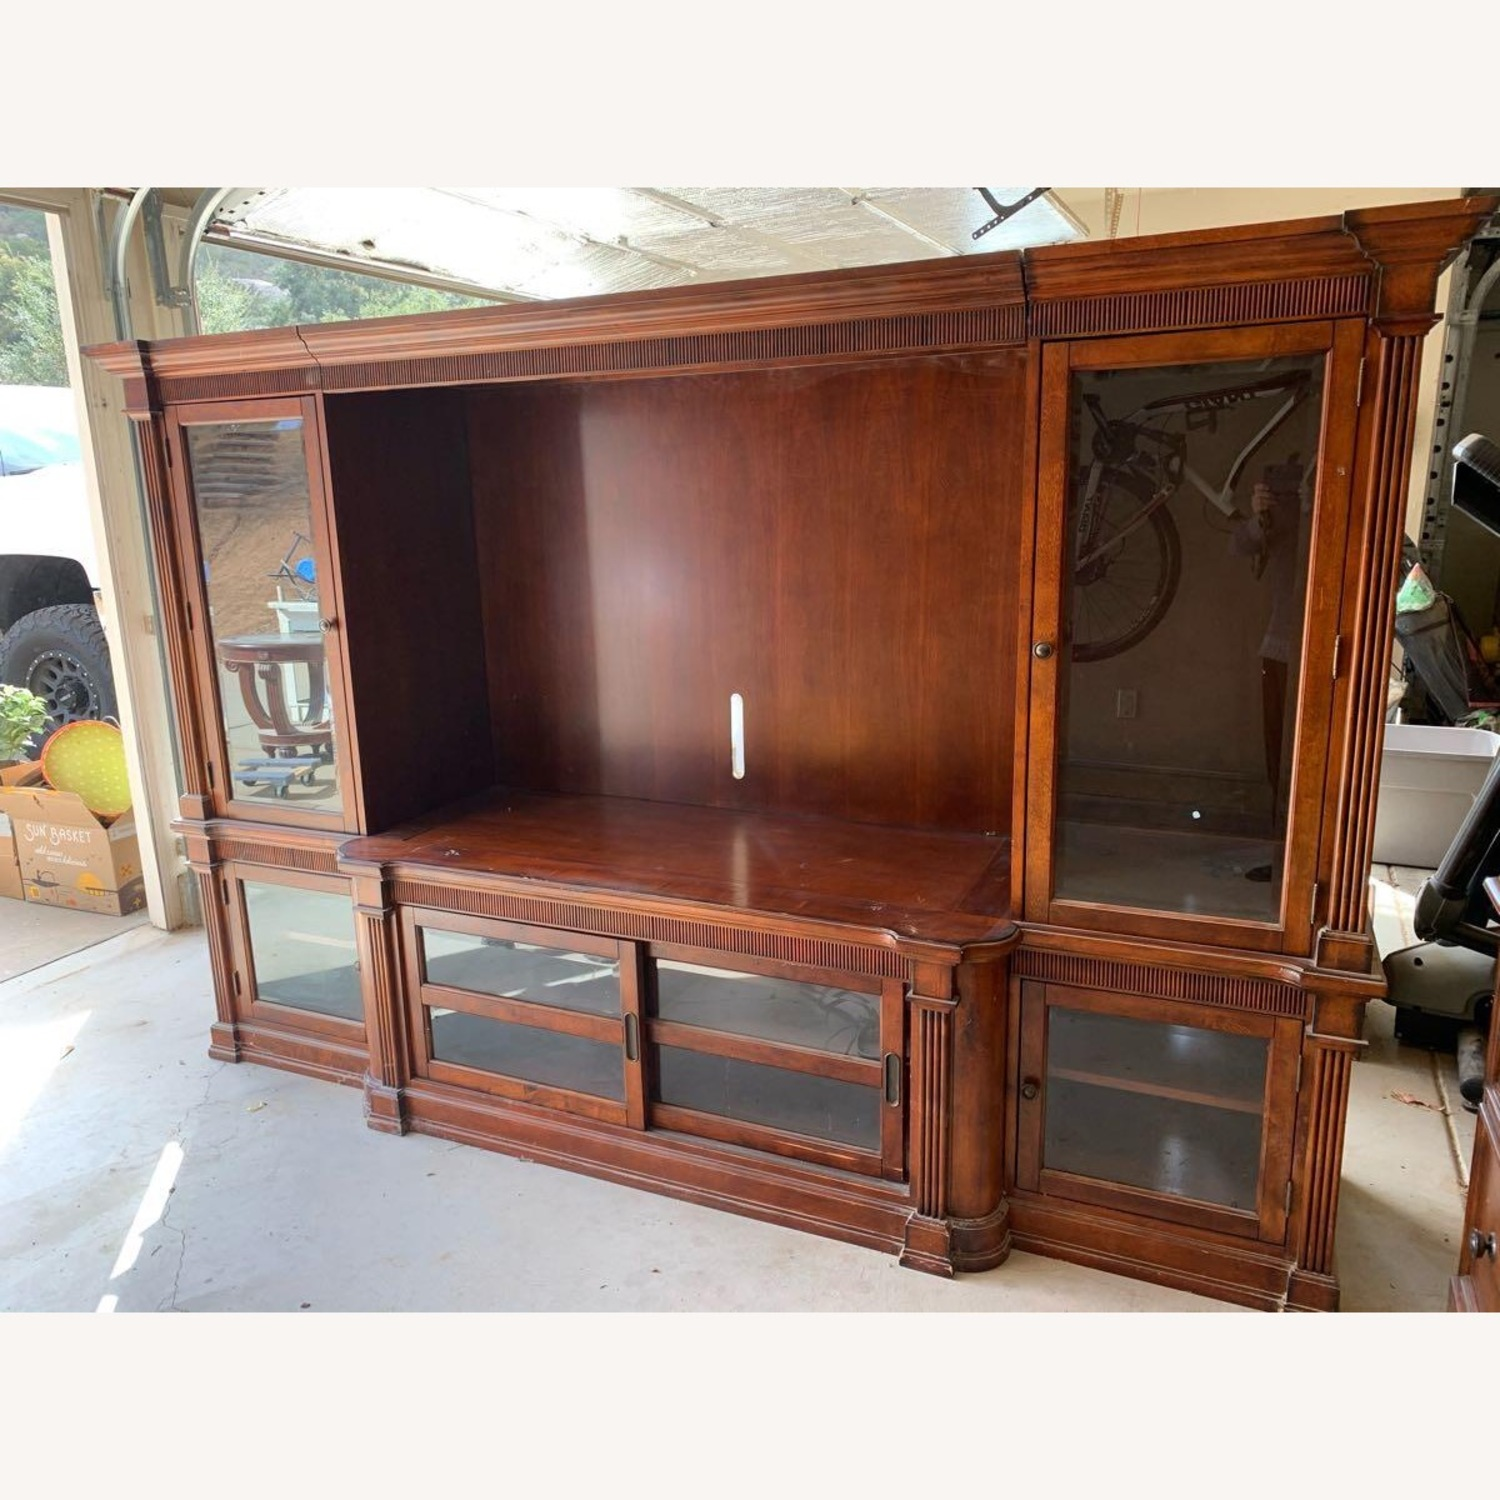 Basset John Elway Entertainment Center Wall Unit - image-1